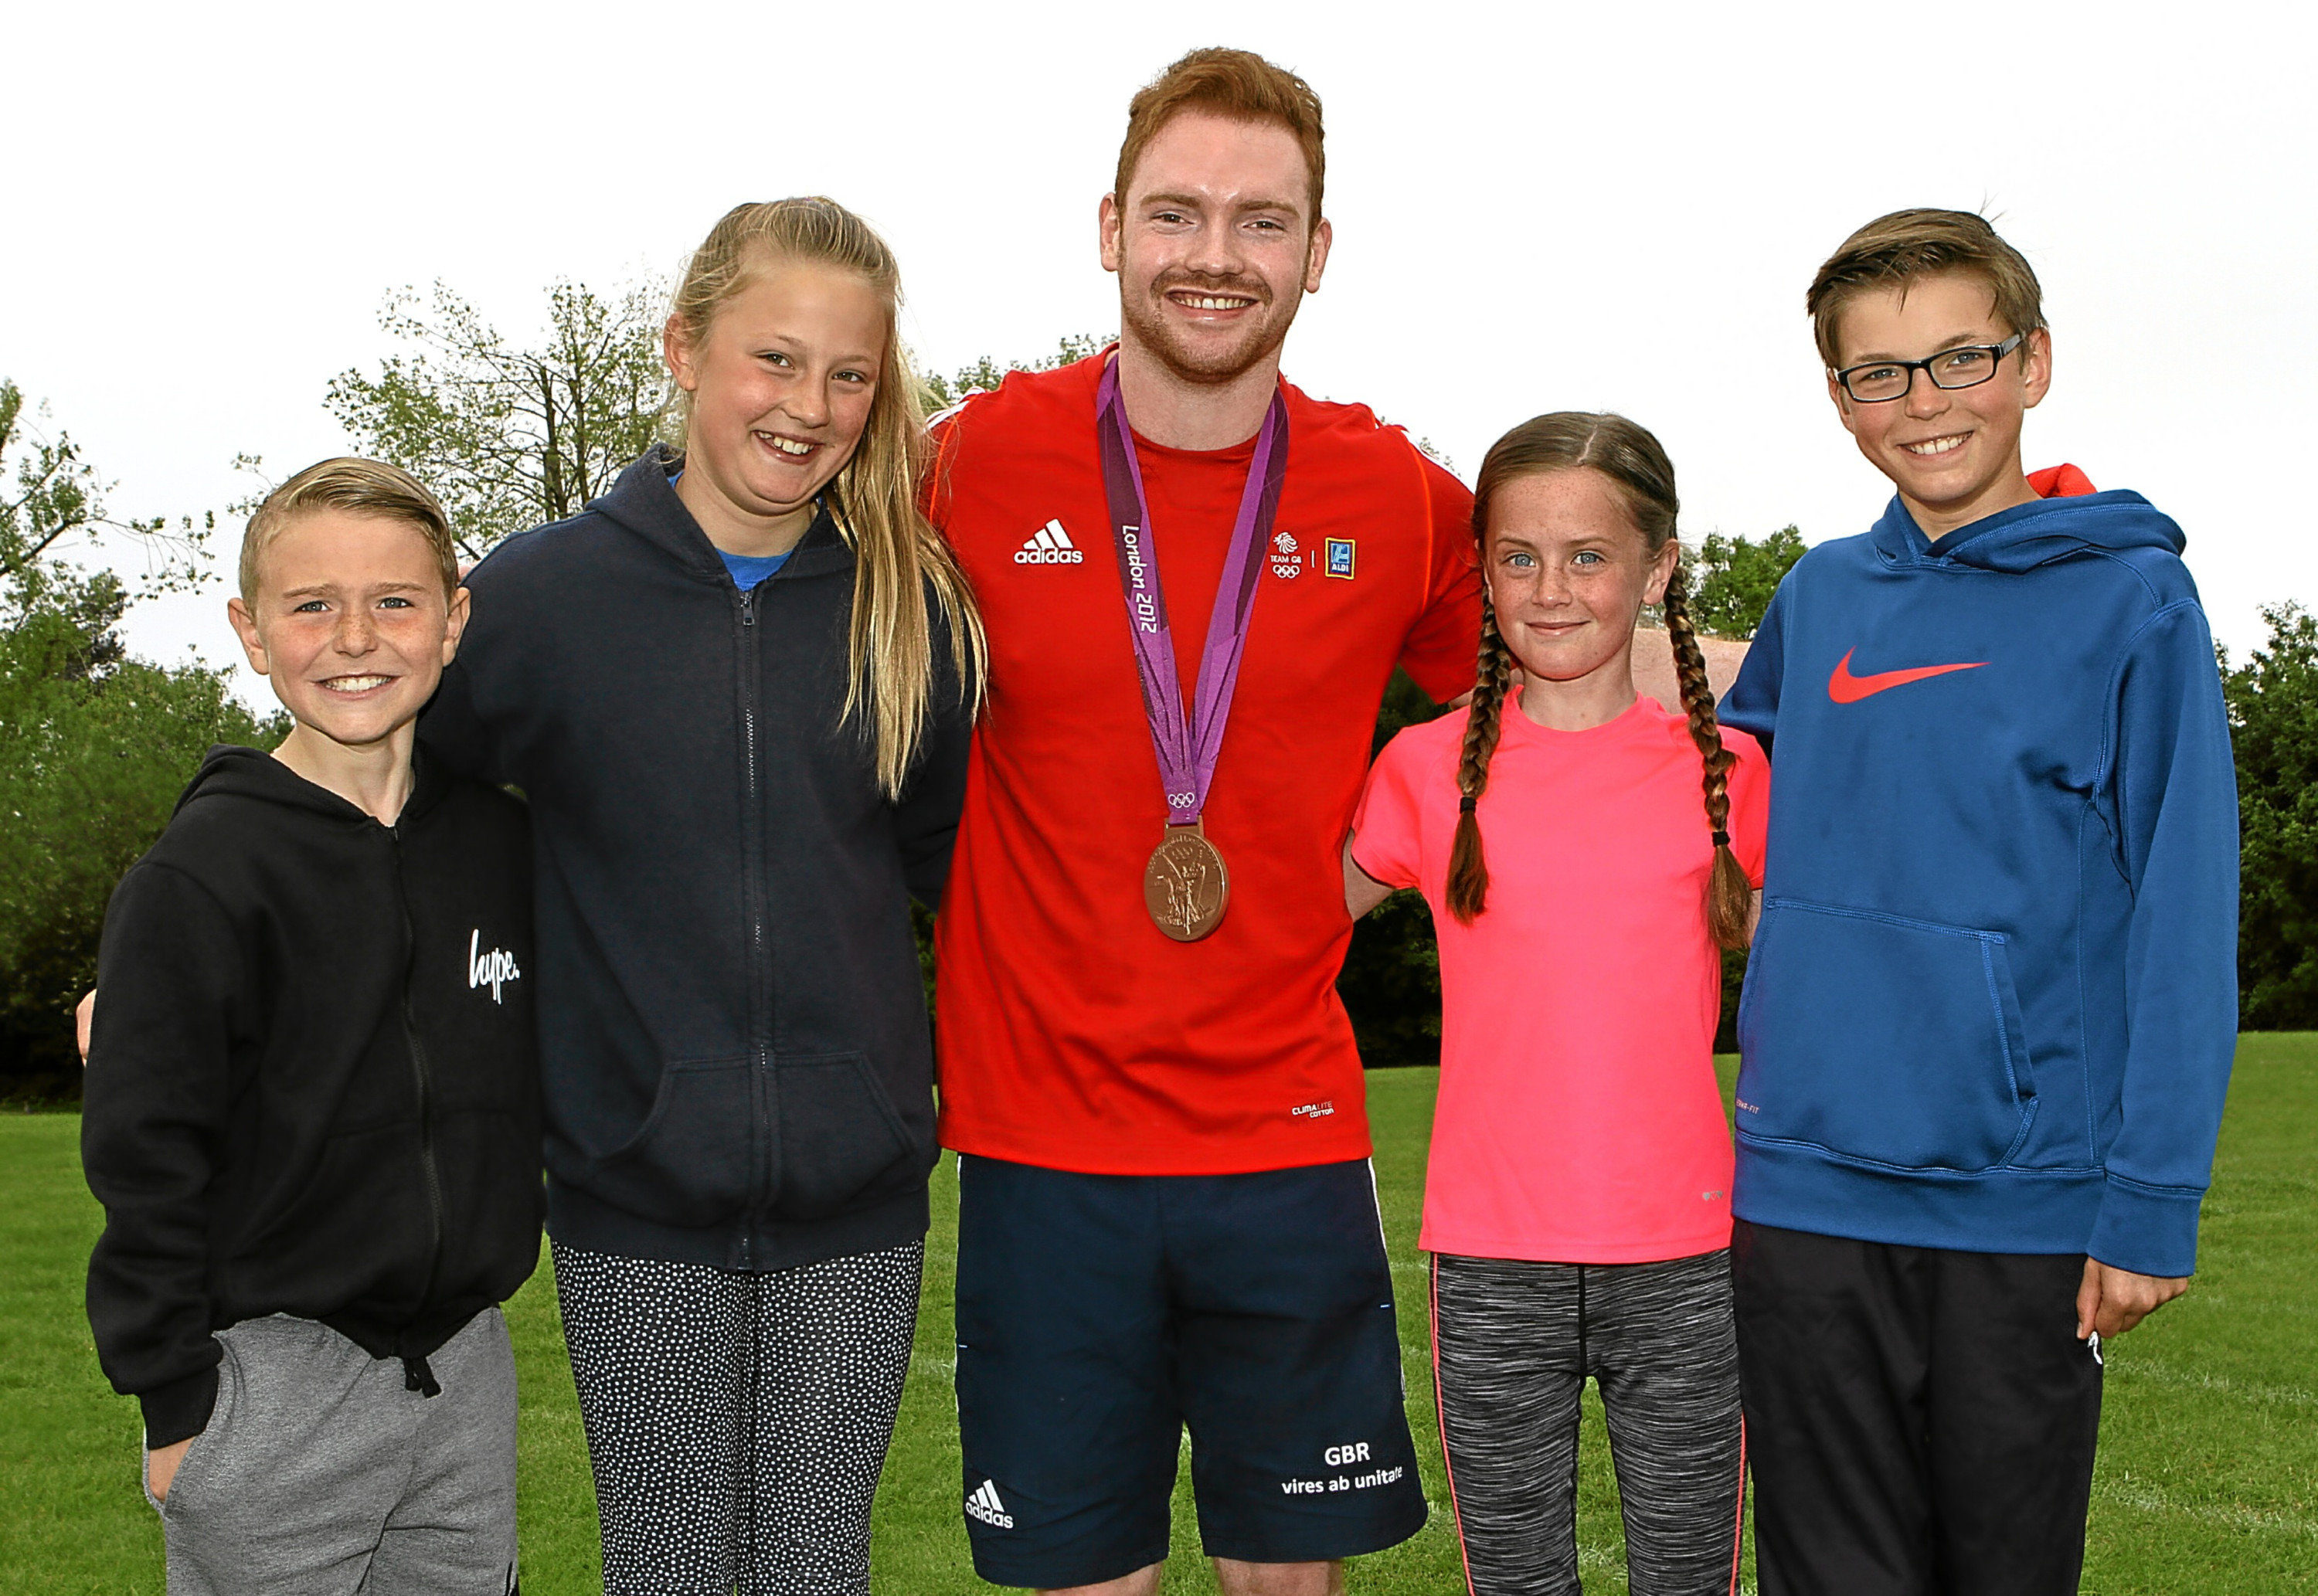 COURIER, DOUGIE NICOLSON, 06/06/16, NEWS. TEAM GB GYMNAST DAN PURVIS AT GRANGE PS. Pictured at Grange Primary School in Monifieth today, Monday 6th June 2016, is Team GB Gymnast, Dan Purvis with L/R, Aidan Cobb, Niamh Grogan, Beverley Kydd and Lewis Grant, all P6. Story by Angus office.